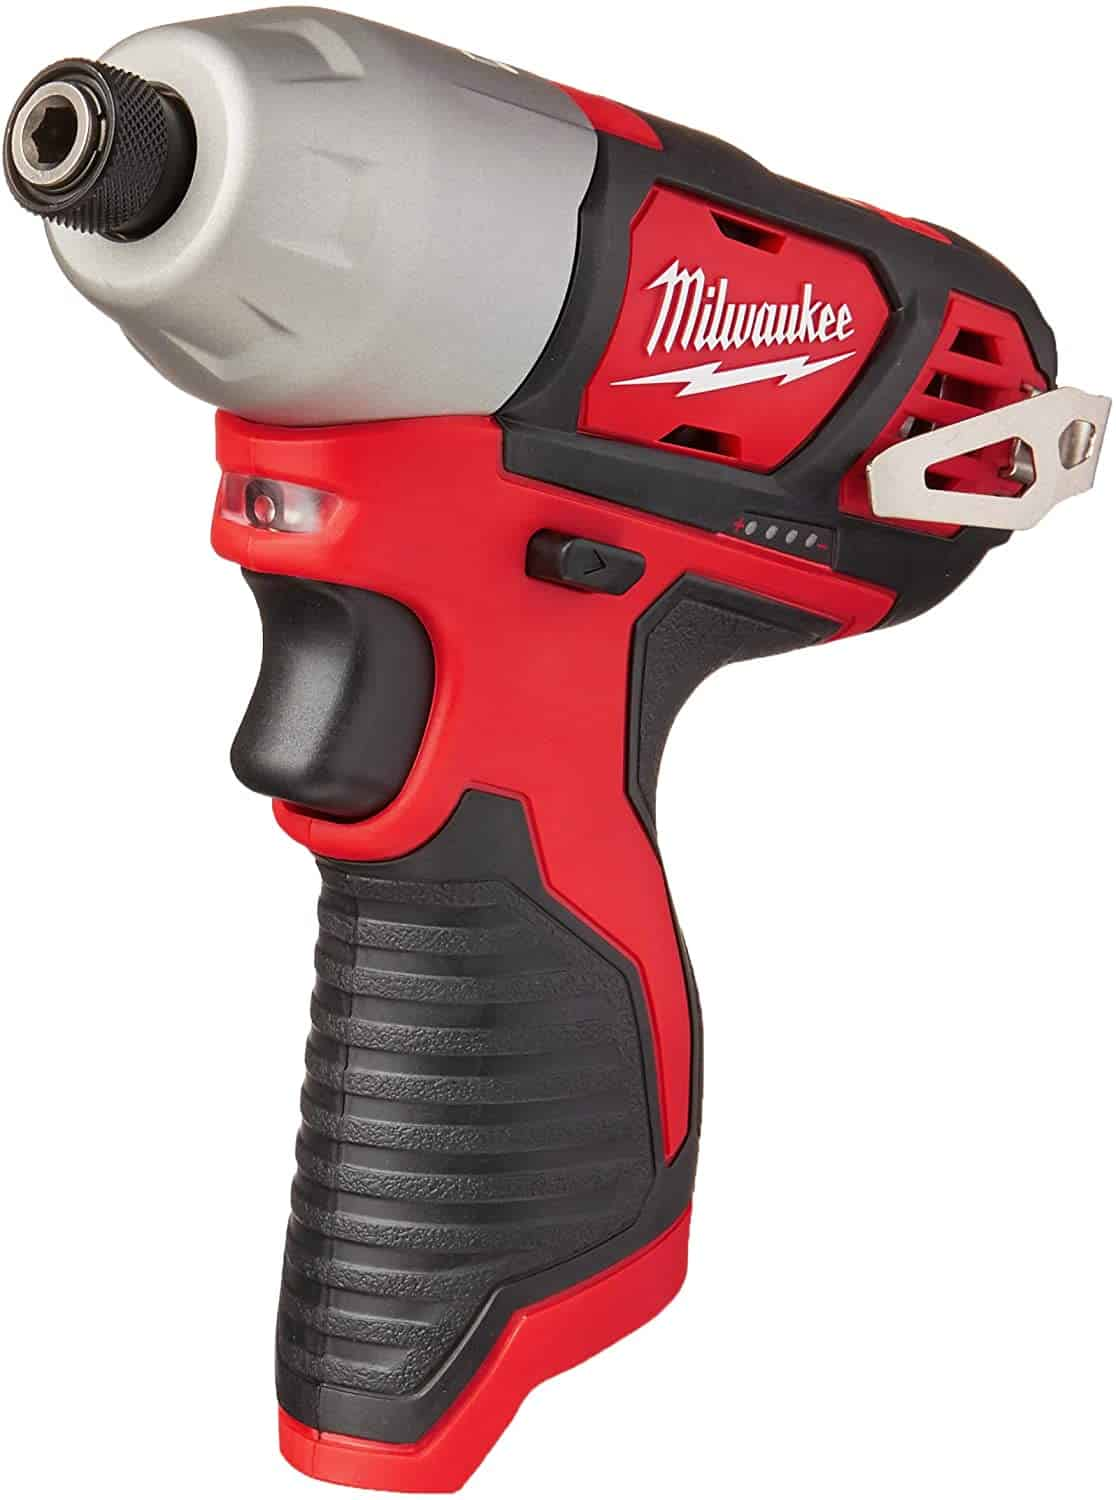 Best battery life 12v impact driver: MILWAUKEE'S 2462-20 M12 Lithium-Ion Cordless Impact Driver